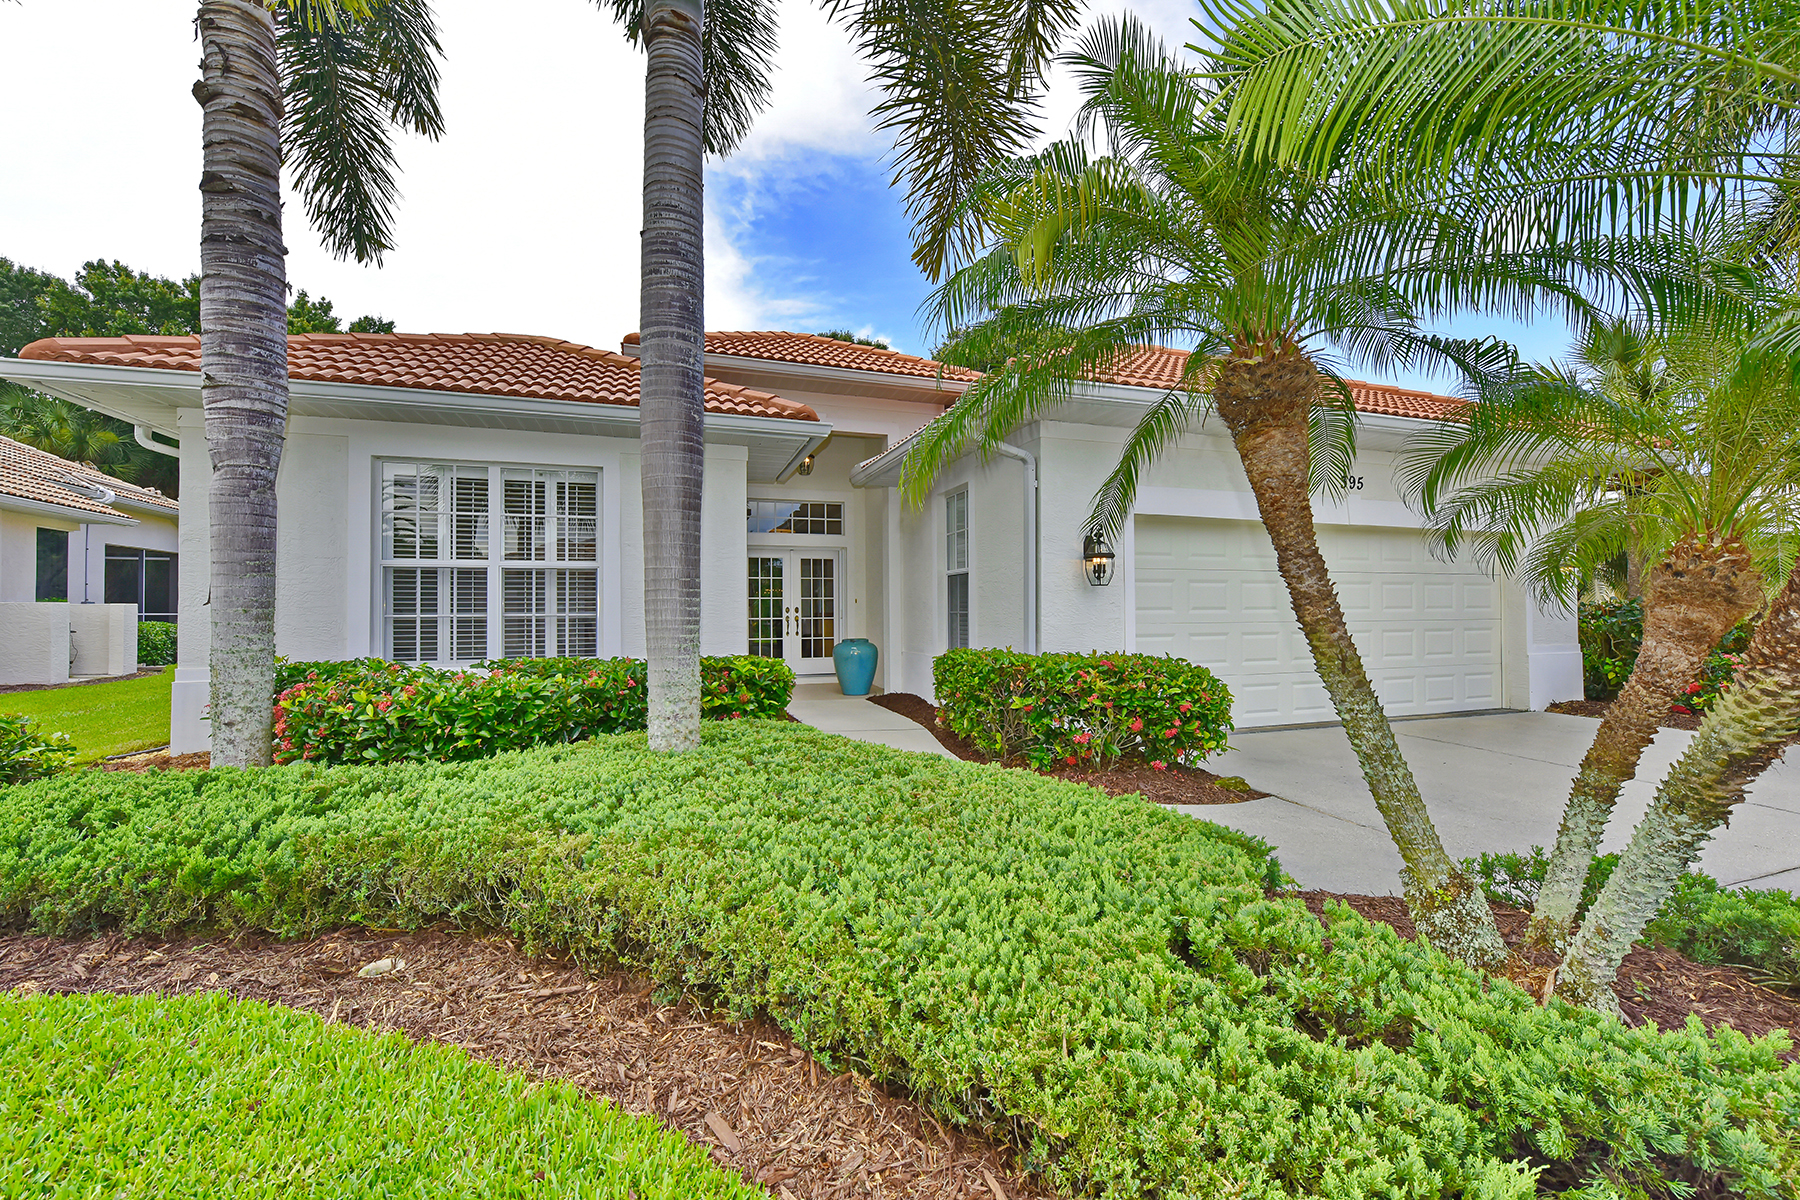 Single Family Home for Sale at SAWGRASS 395 Marsh Creek Rd Venice, Florida 34292 United States